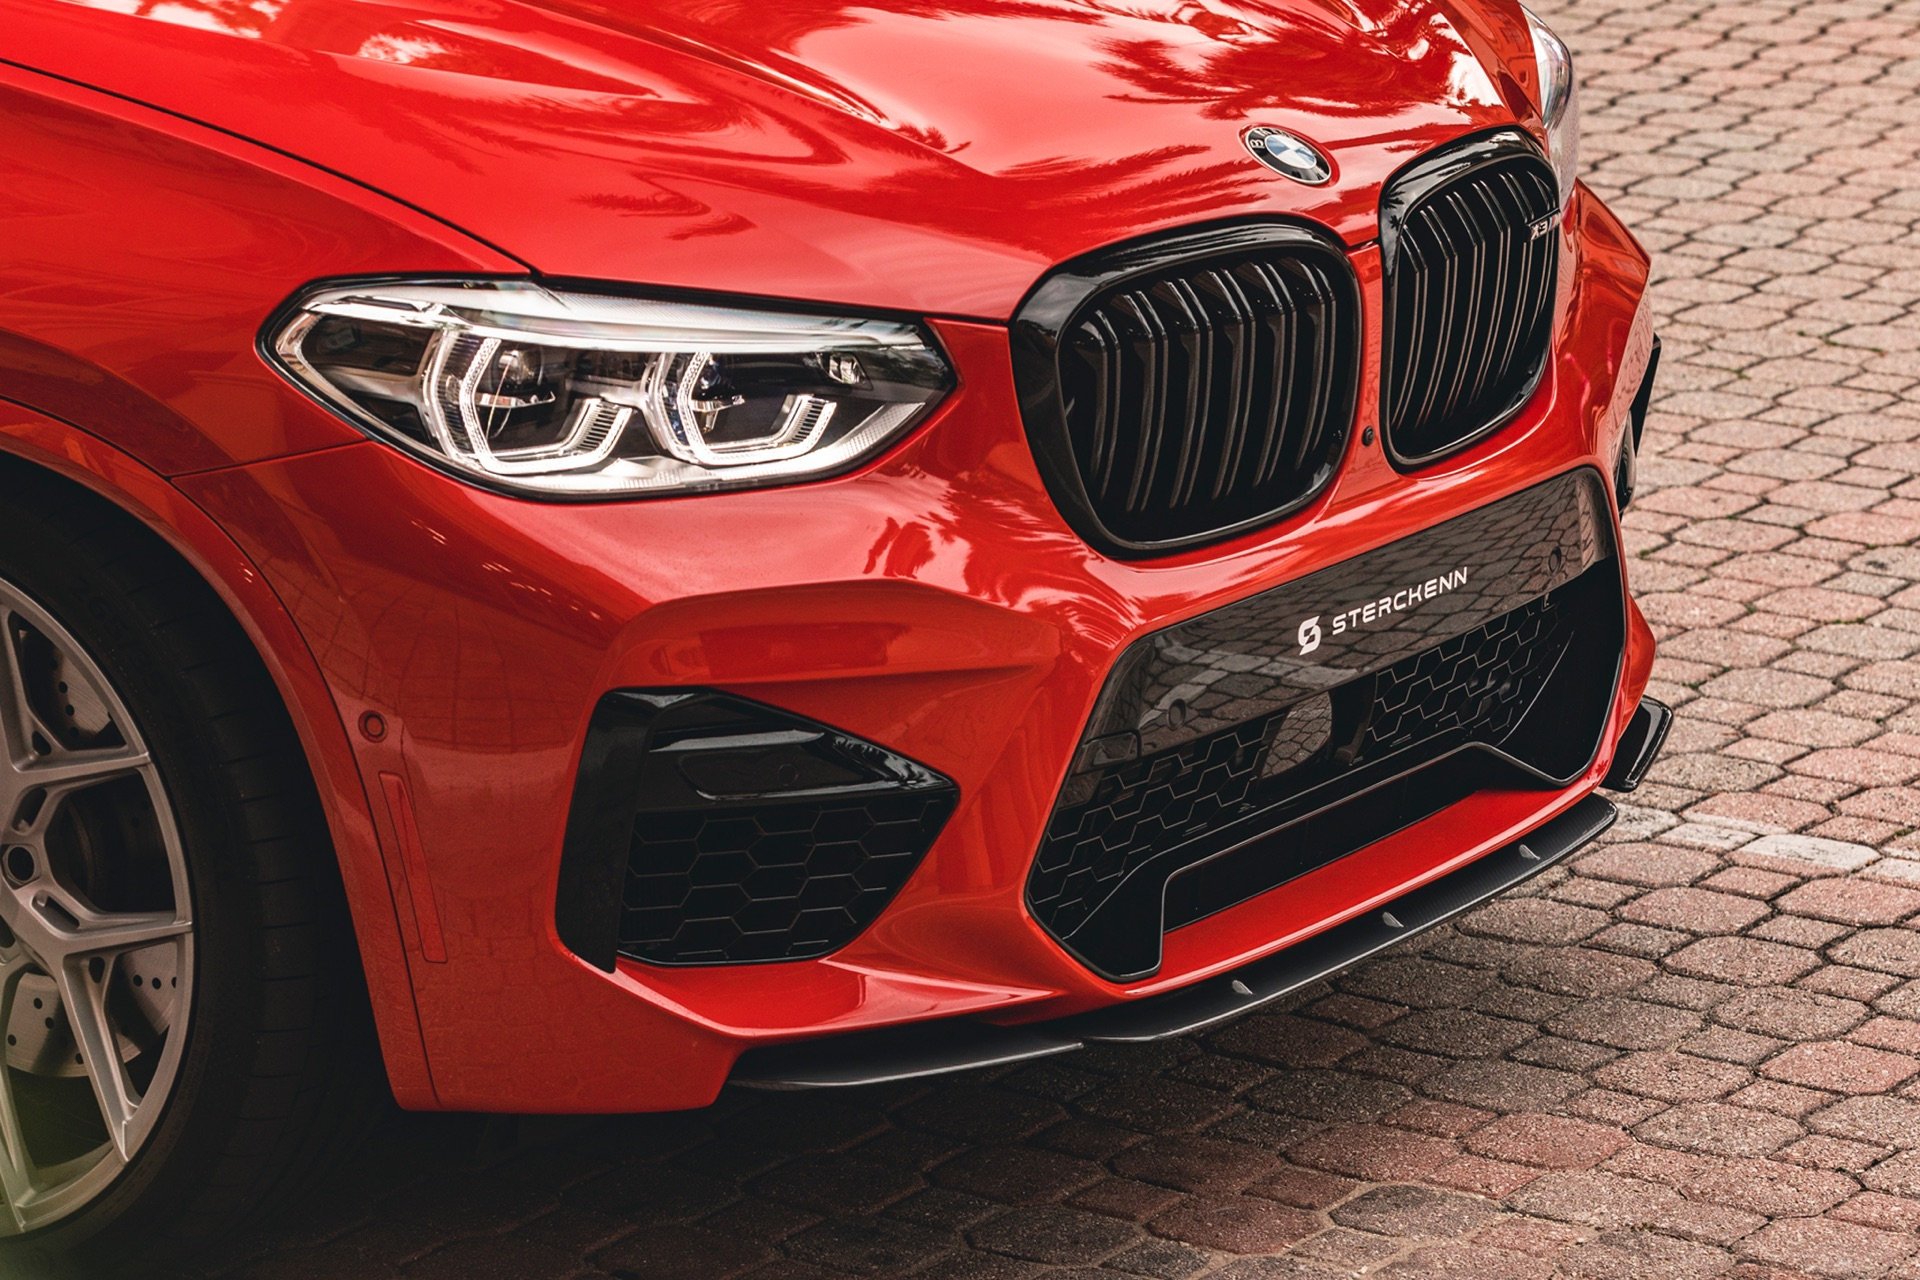 BMW_X3_M_by_Sterckenn_0004